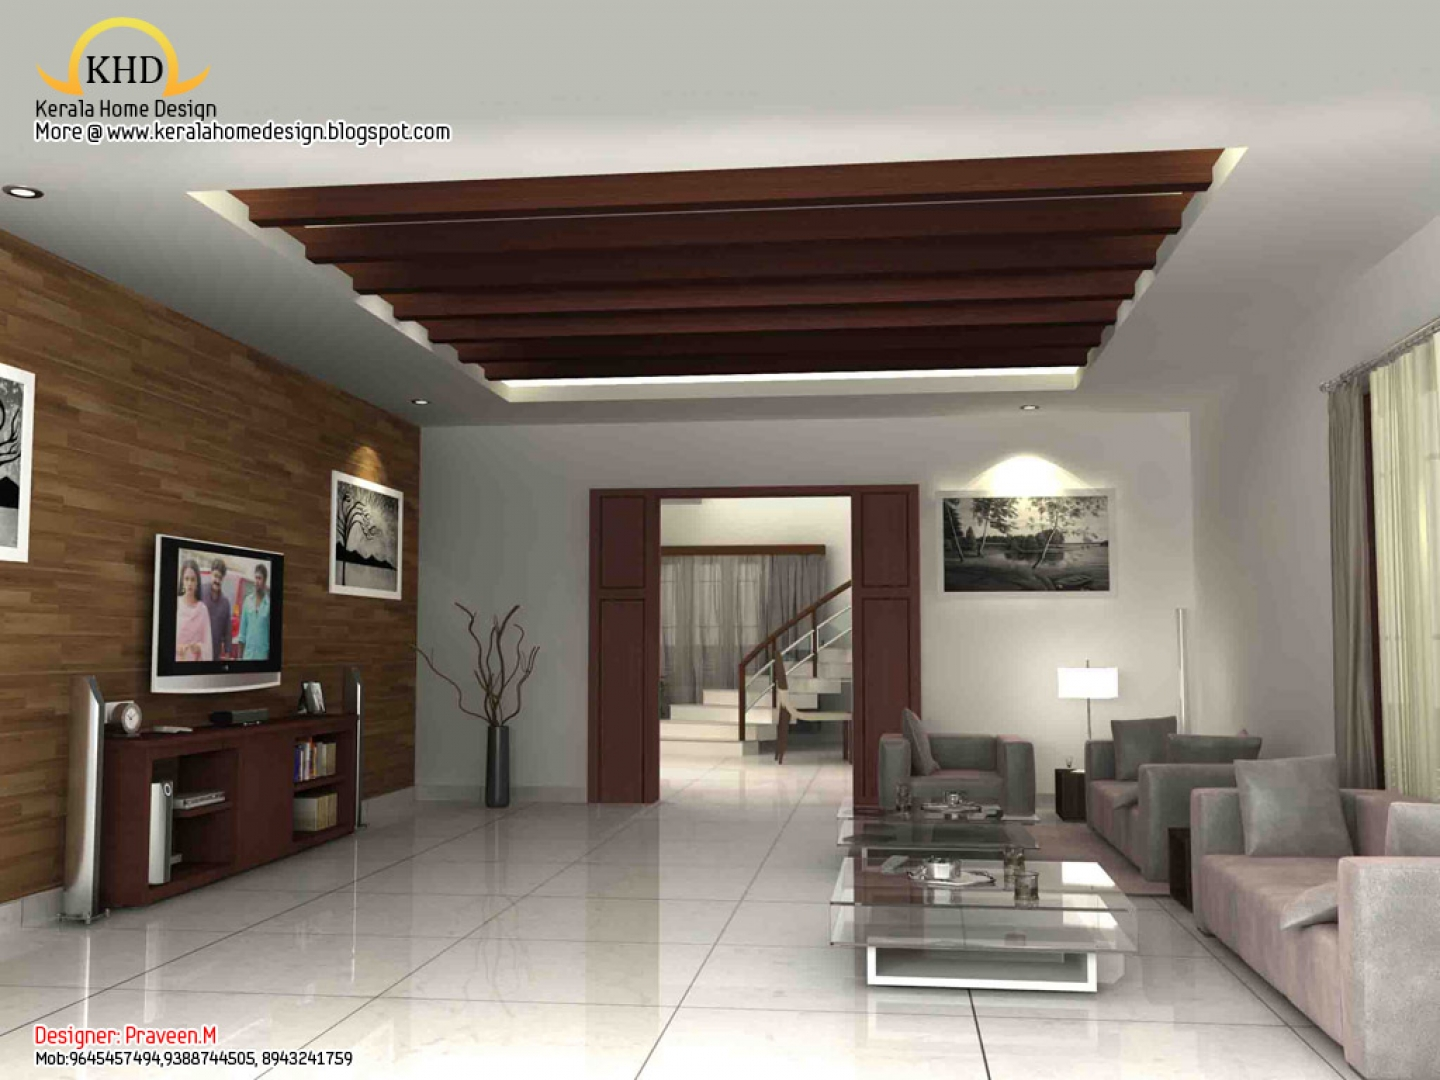 Home Designs Wallpaper Best Small Home Plans Wallpaper htm 1440x1080